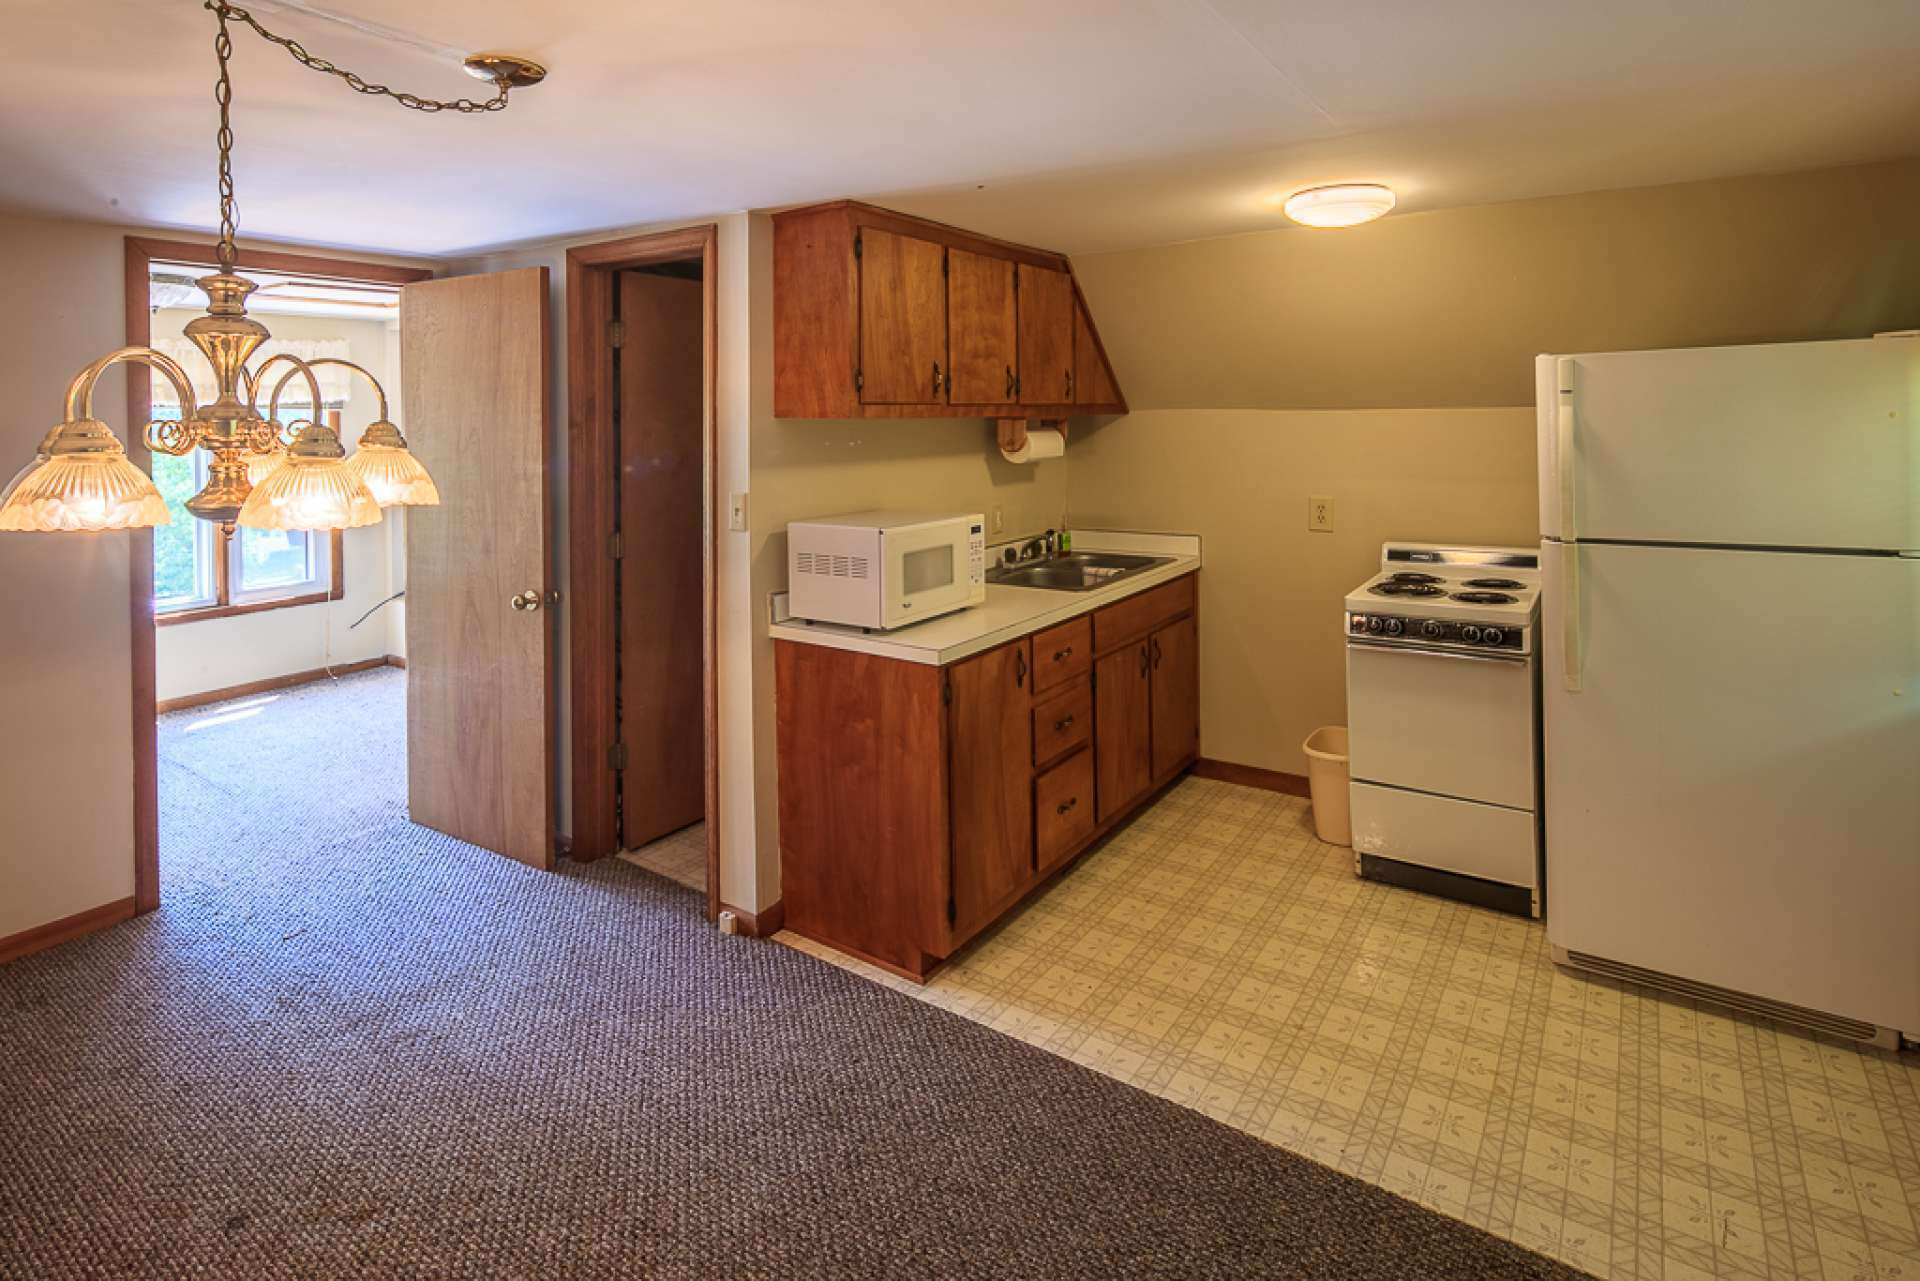 Complete with its own kitchenette, full bath, bedroom and small porch, this little home is just right for overnight guests.